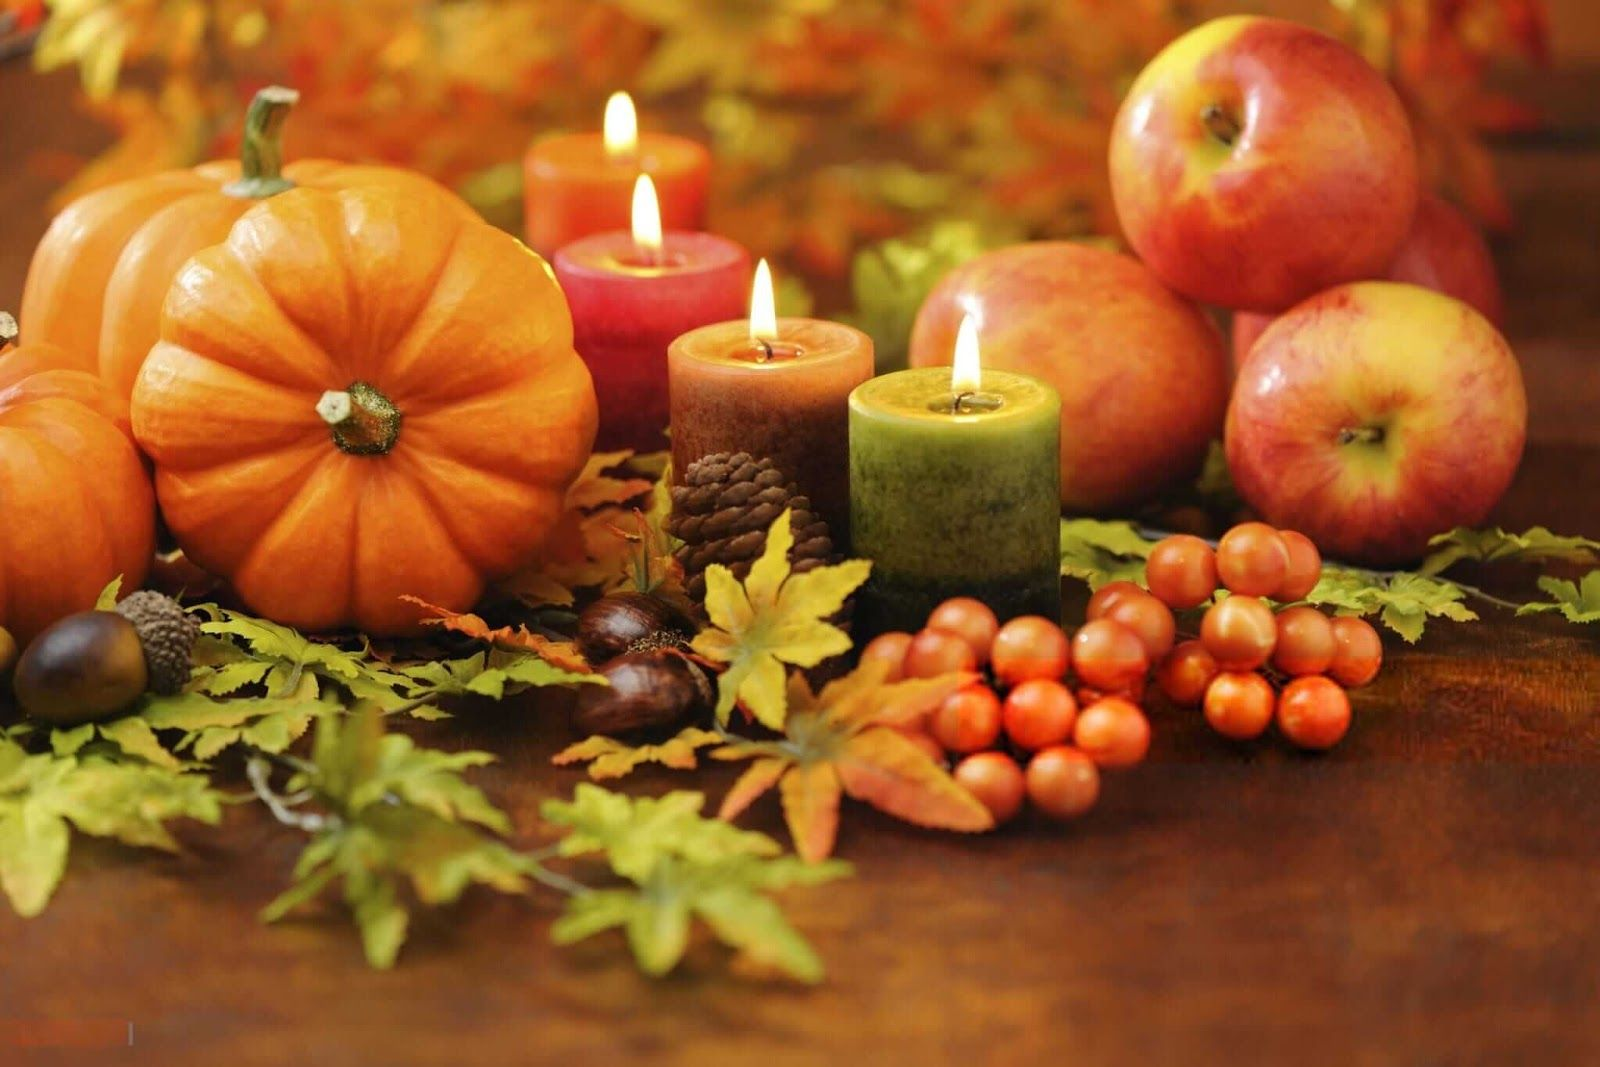 Free Thanksgiving Wallpaper Photos Images Download (With